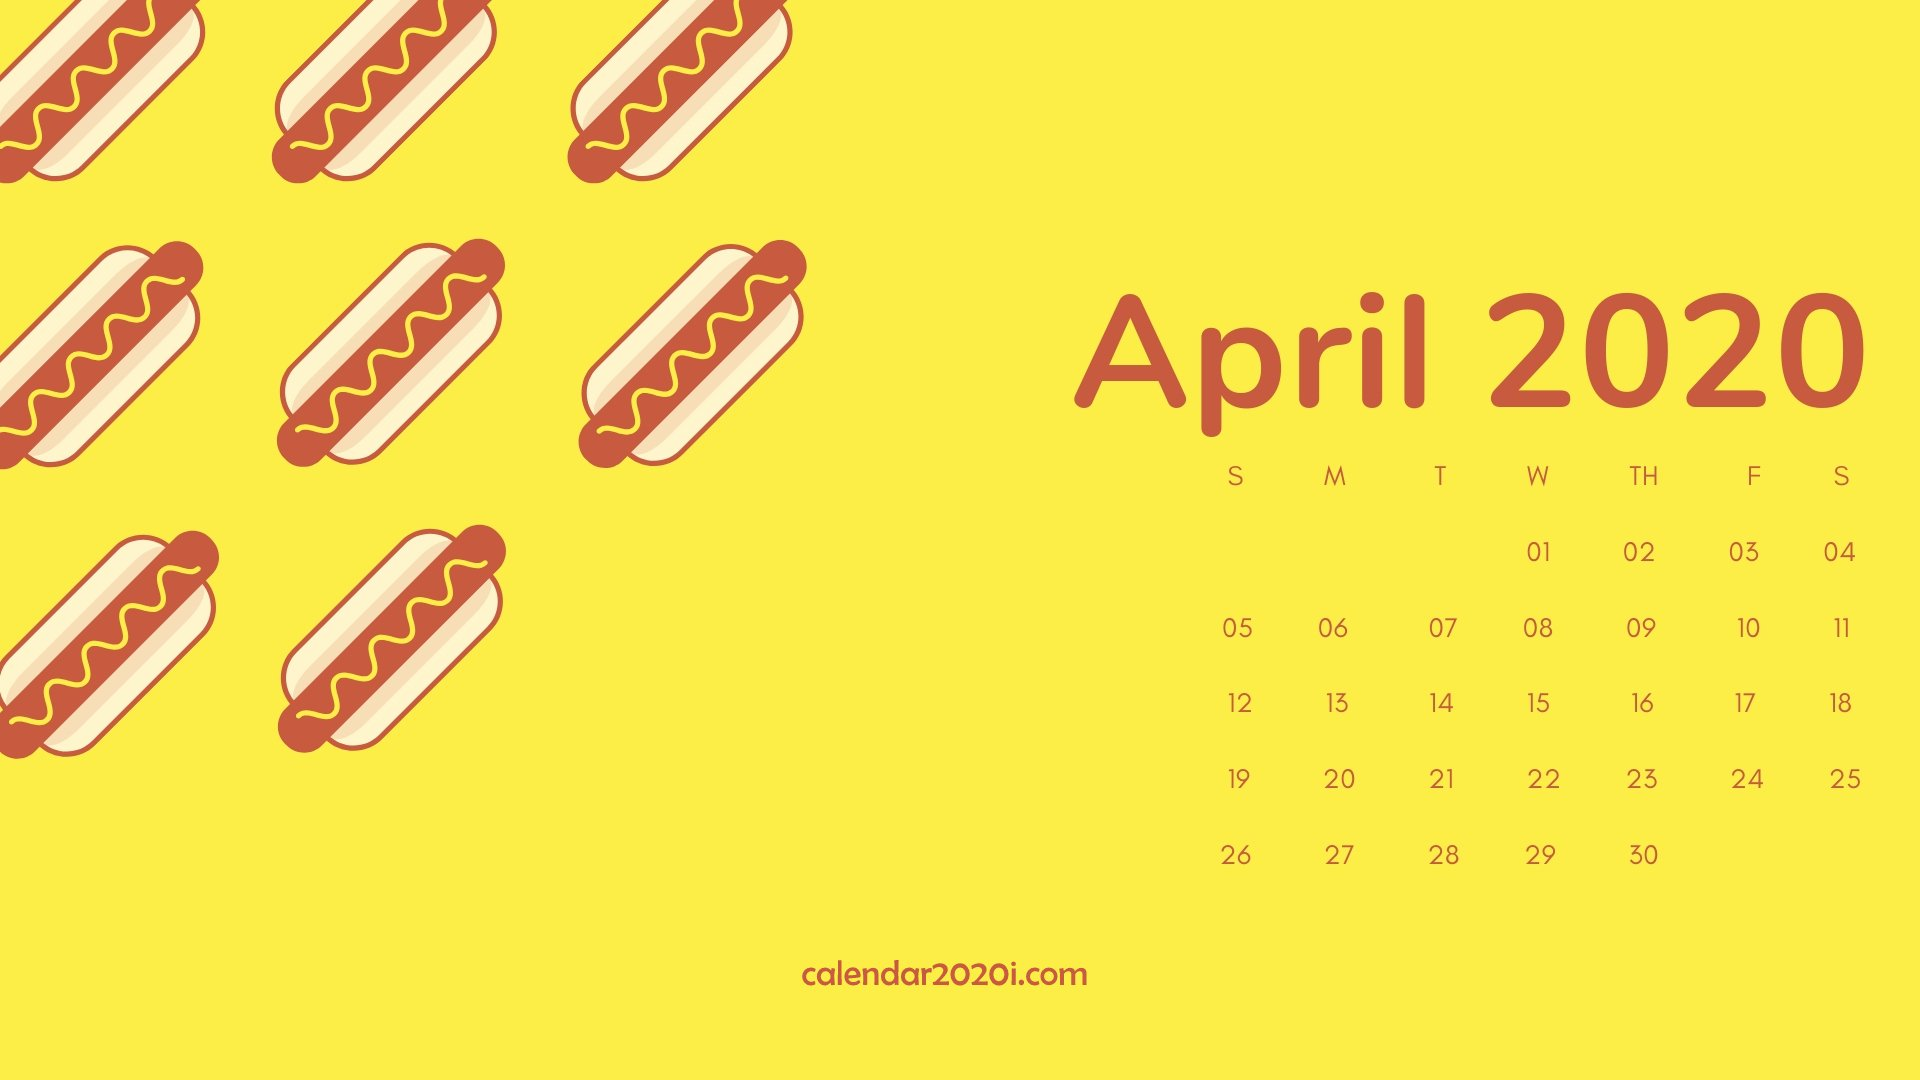 2020 calendar hd wallpaper Image es 1920x1080